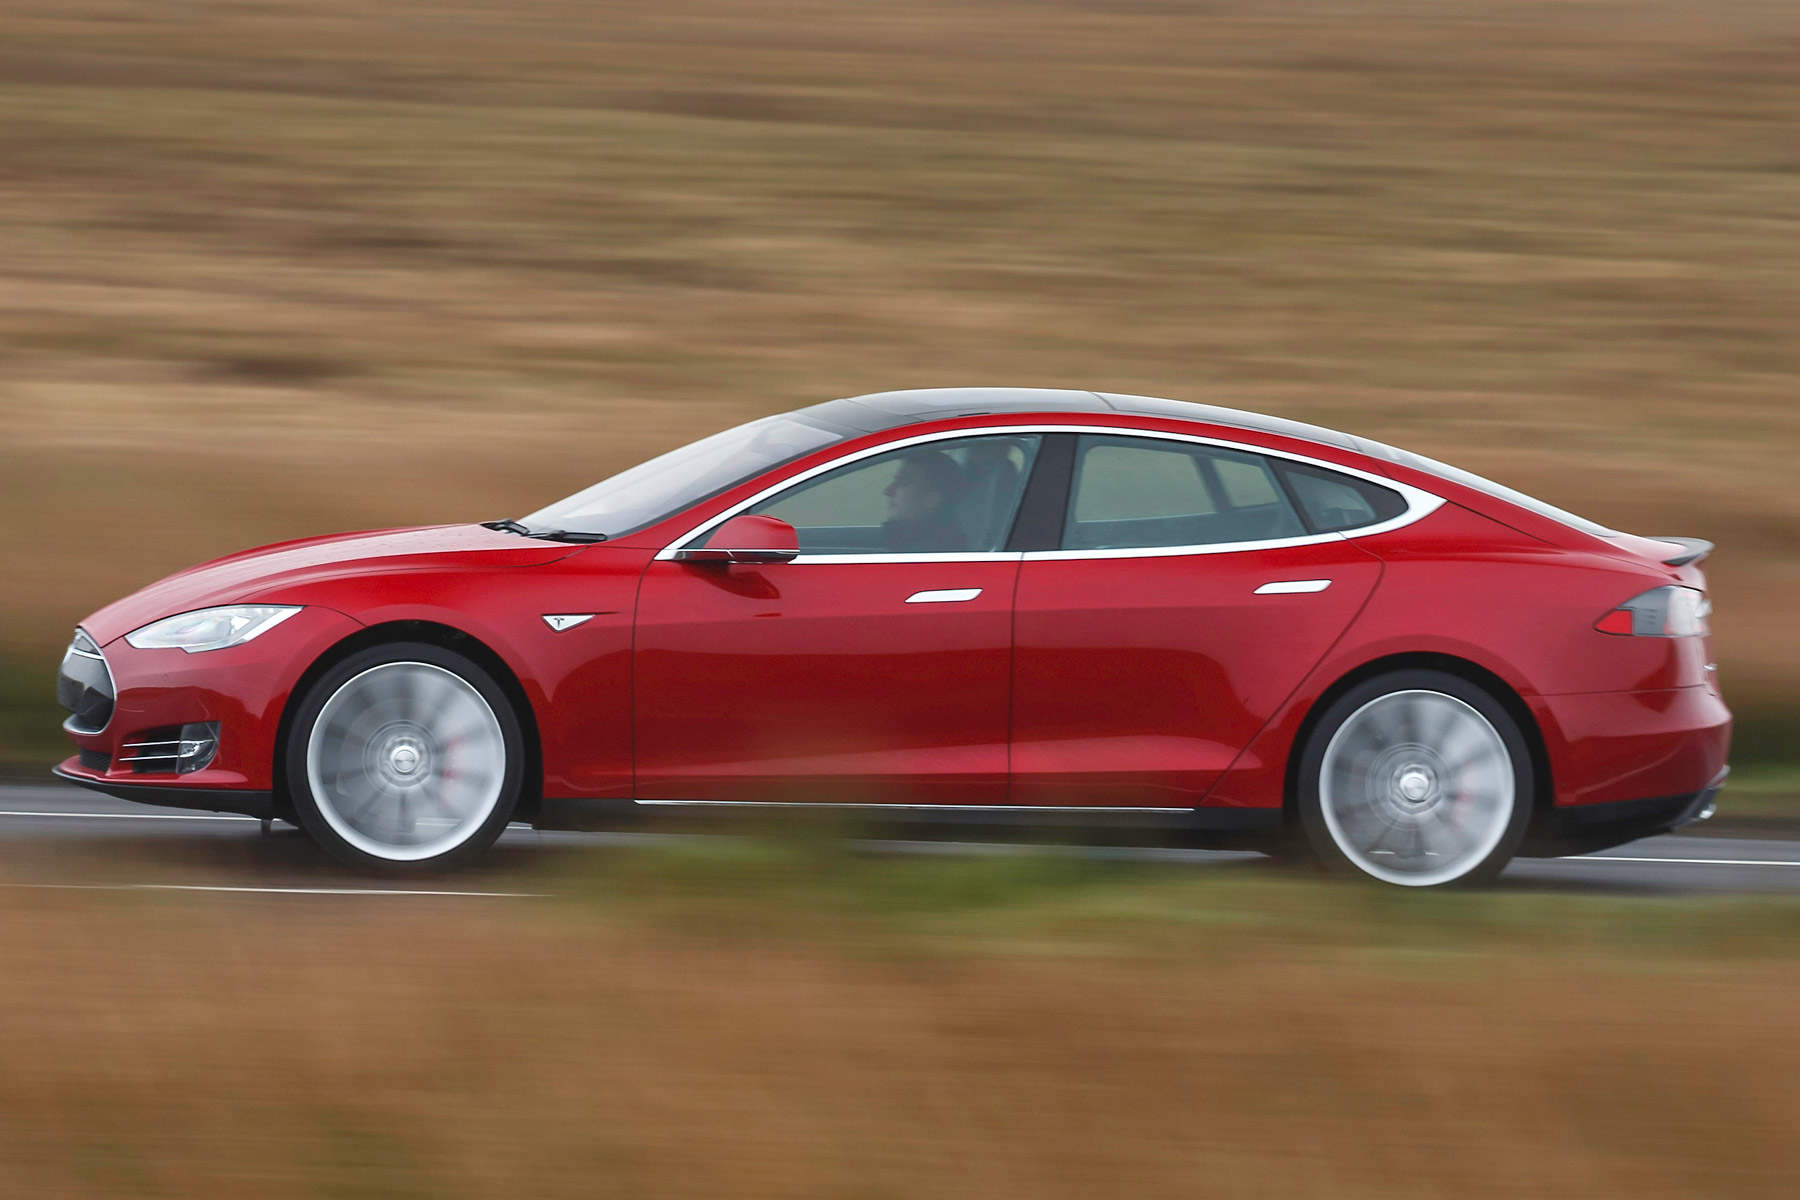 We 'drive' Tesla's driverless car on UK roads